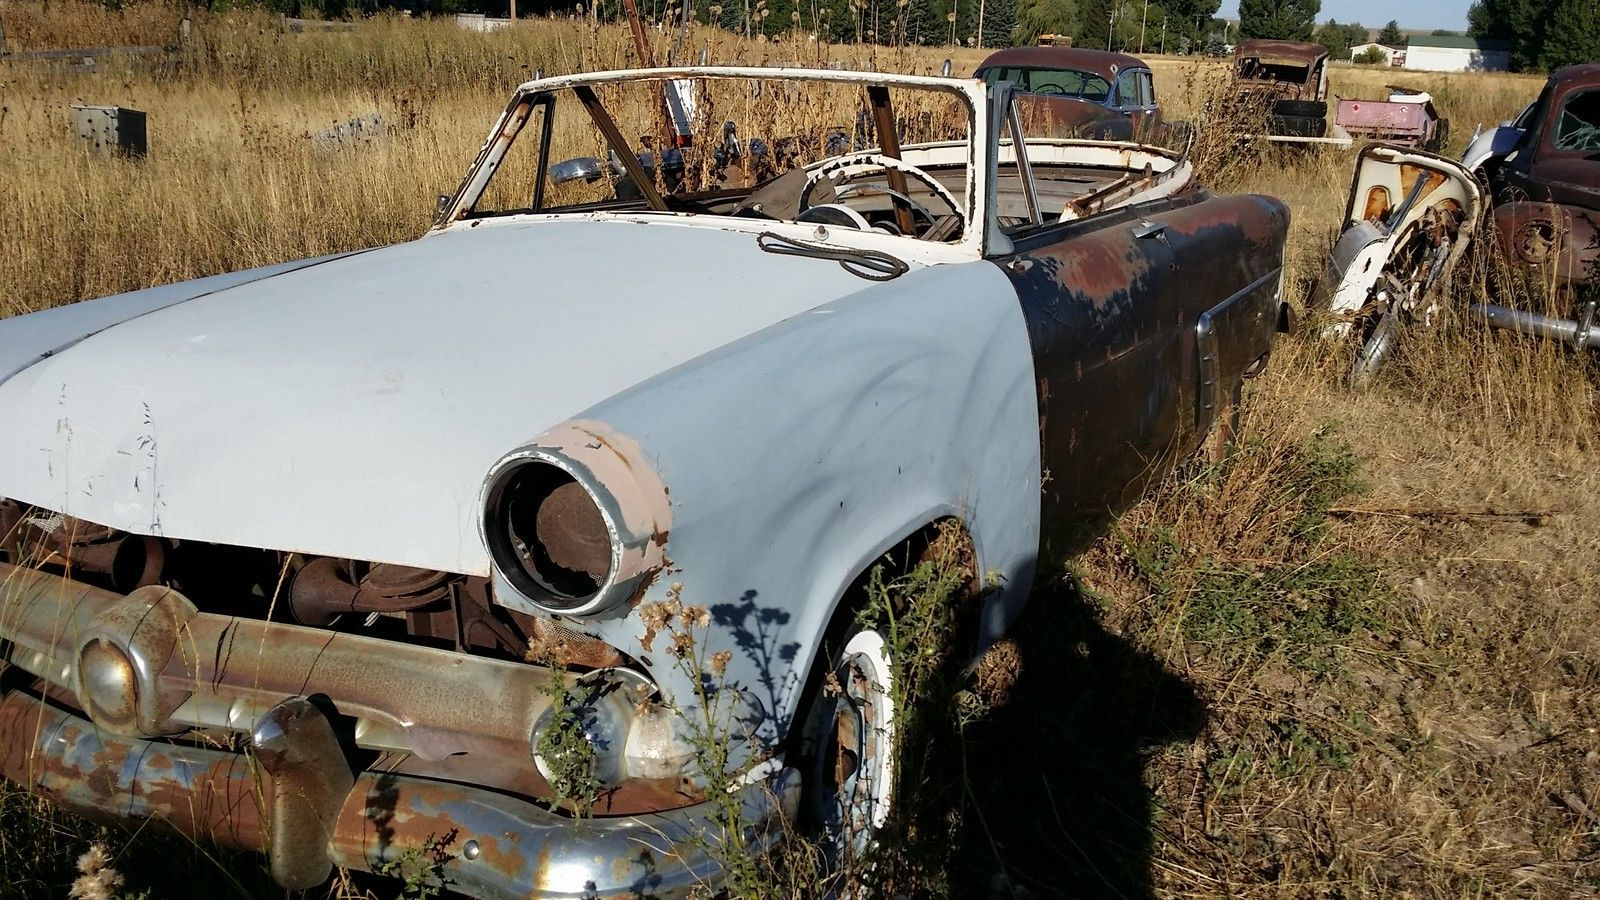 1954 Ford Crestline Sunliner Convertible Project car | Project ...